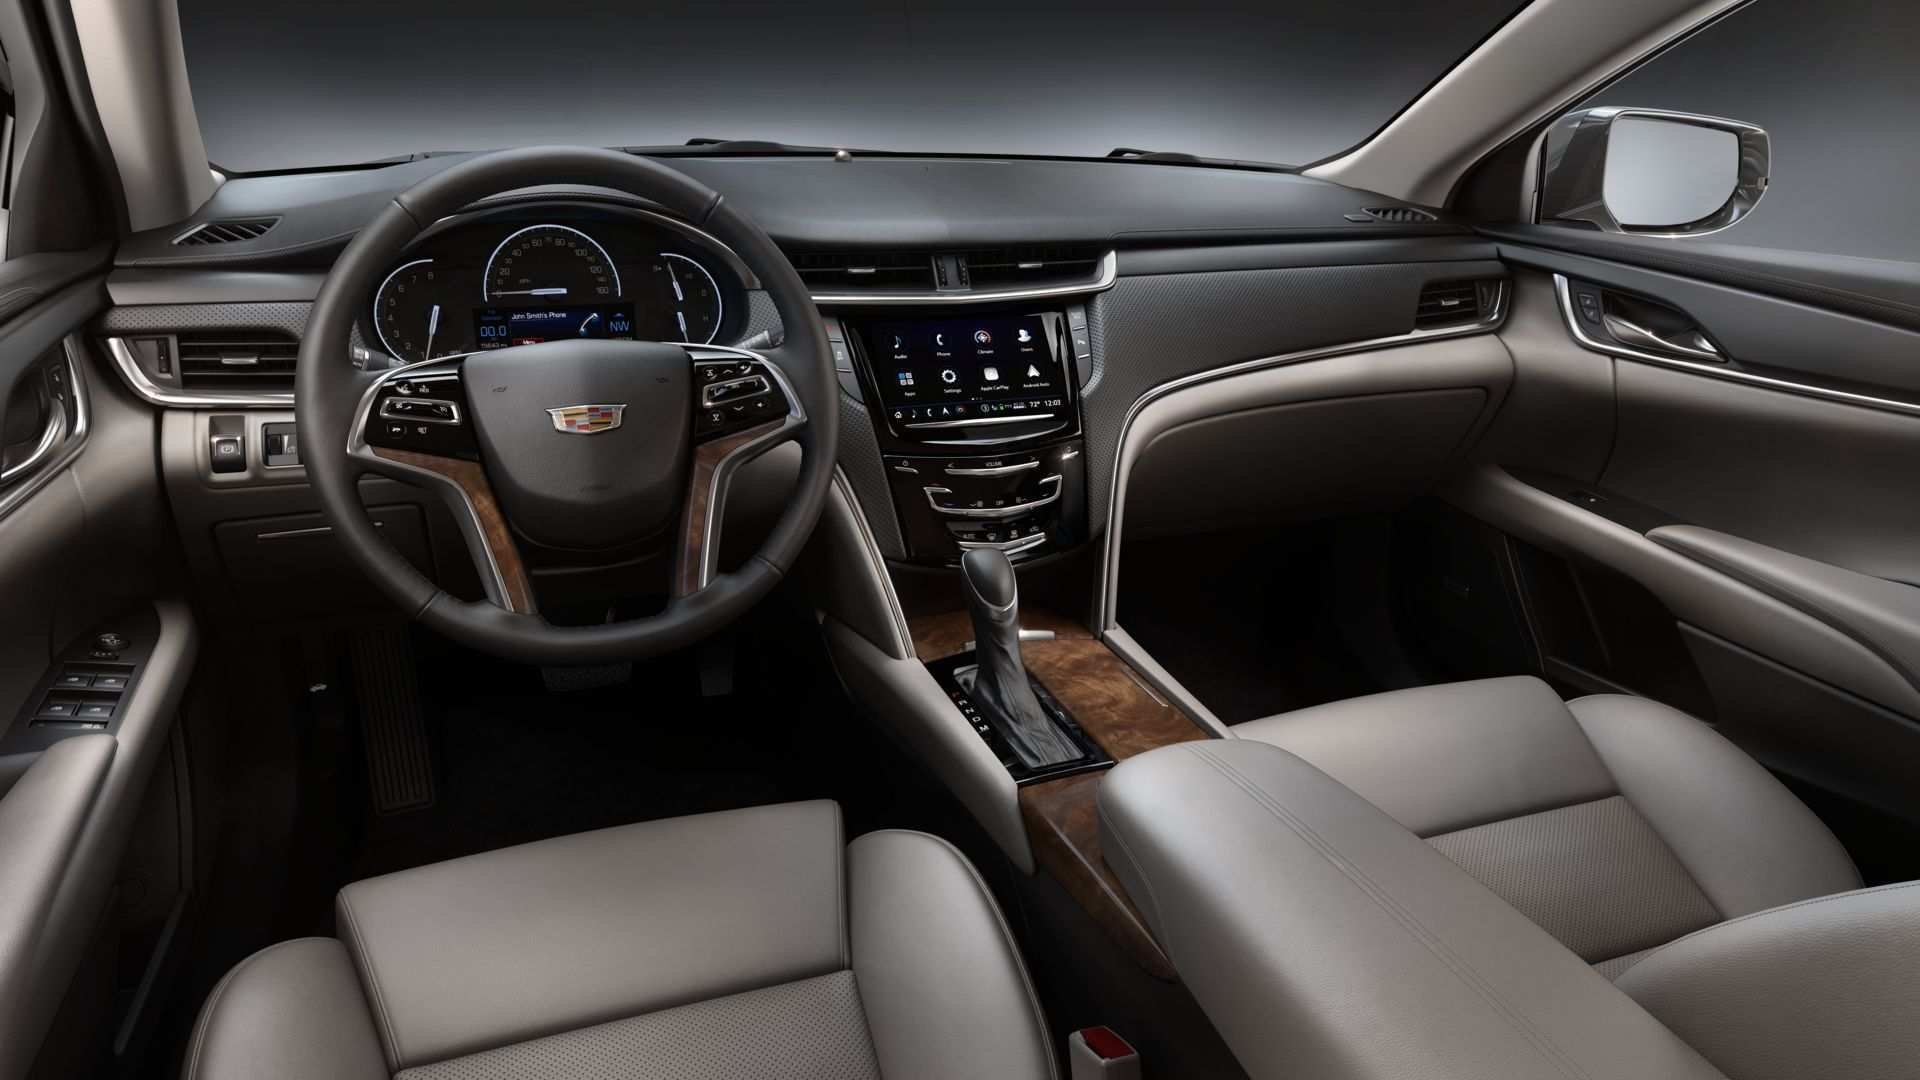 44 New 2019 Cadillac Interior Images with 2019 Cadillac Interior